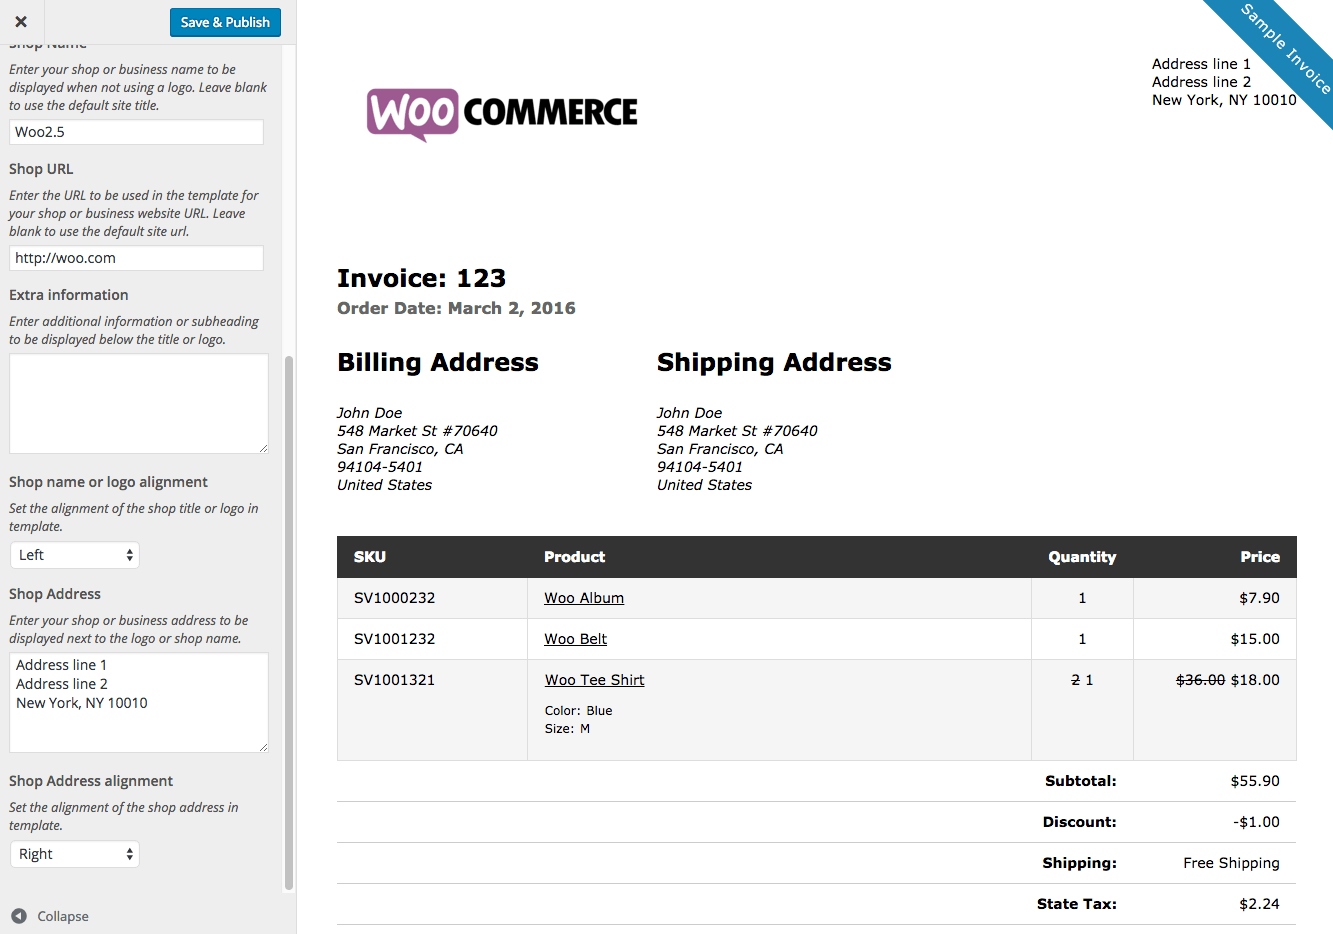 Helpingtohealus  Marvelous Woocommerce Print Invoices Amp Packing Lists  Woocommerce Docs With Heavenly Woocommerce Print Invoices  Packing Lists Customizer With Cute Boat Invoice Also Invoicing With Stripe In Addition Commercial Invoice Value And Invoice Process Flow Chart As Well As Free Photography Invoice Template Additionally Invoice Template Uk From Docswoocommercecom With Helpingtohealus  Heavenly Woocommerce Print Invoices Amp Packing Lists  Woocommerce Docs With Cute Woocommerce Print Invoices  Packing Lists Customizer And Marvelous Boat Invoice Also Invoicing With Stripe In Addition Commercial Invoice Value From Docswoocommercecom